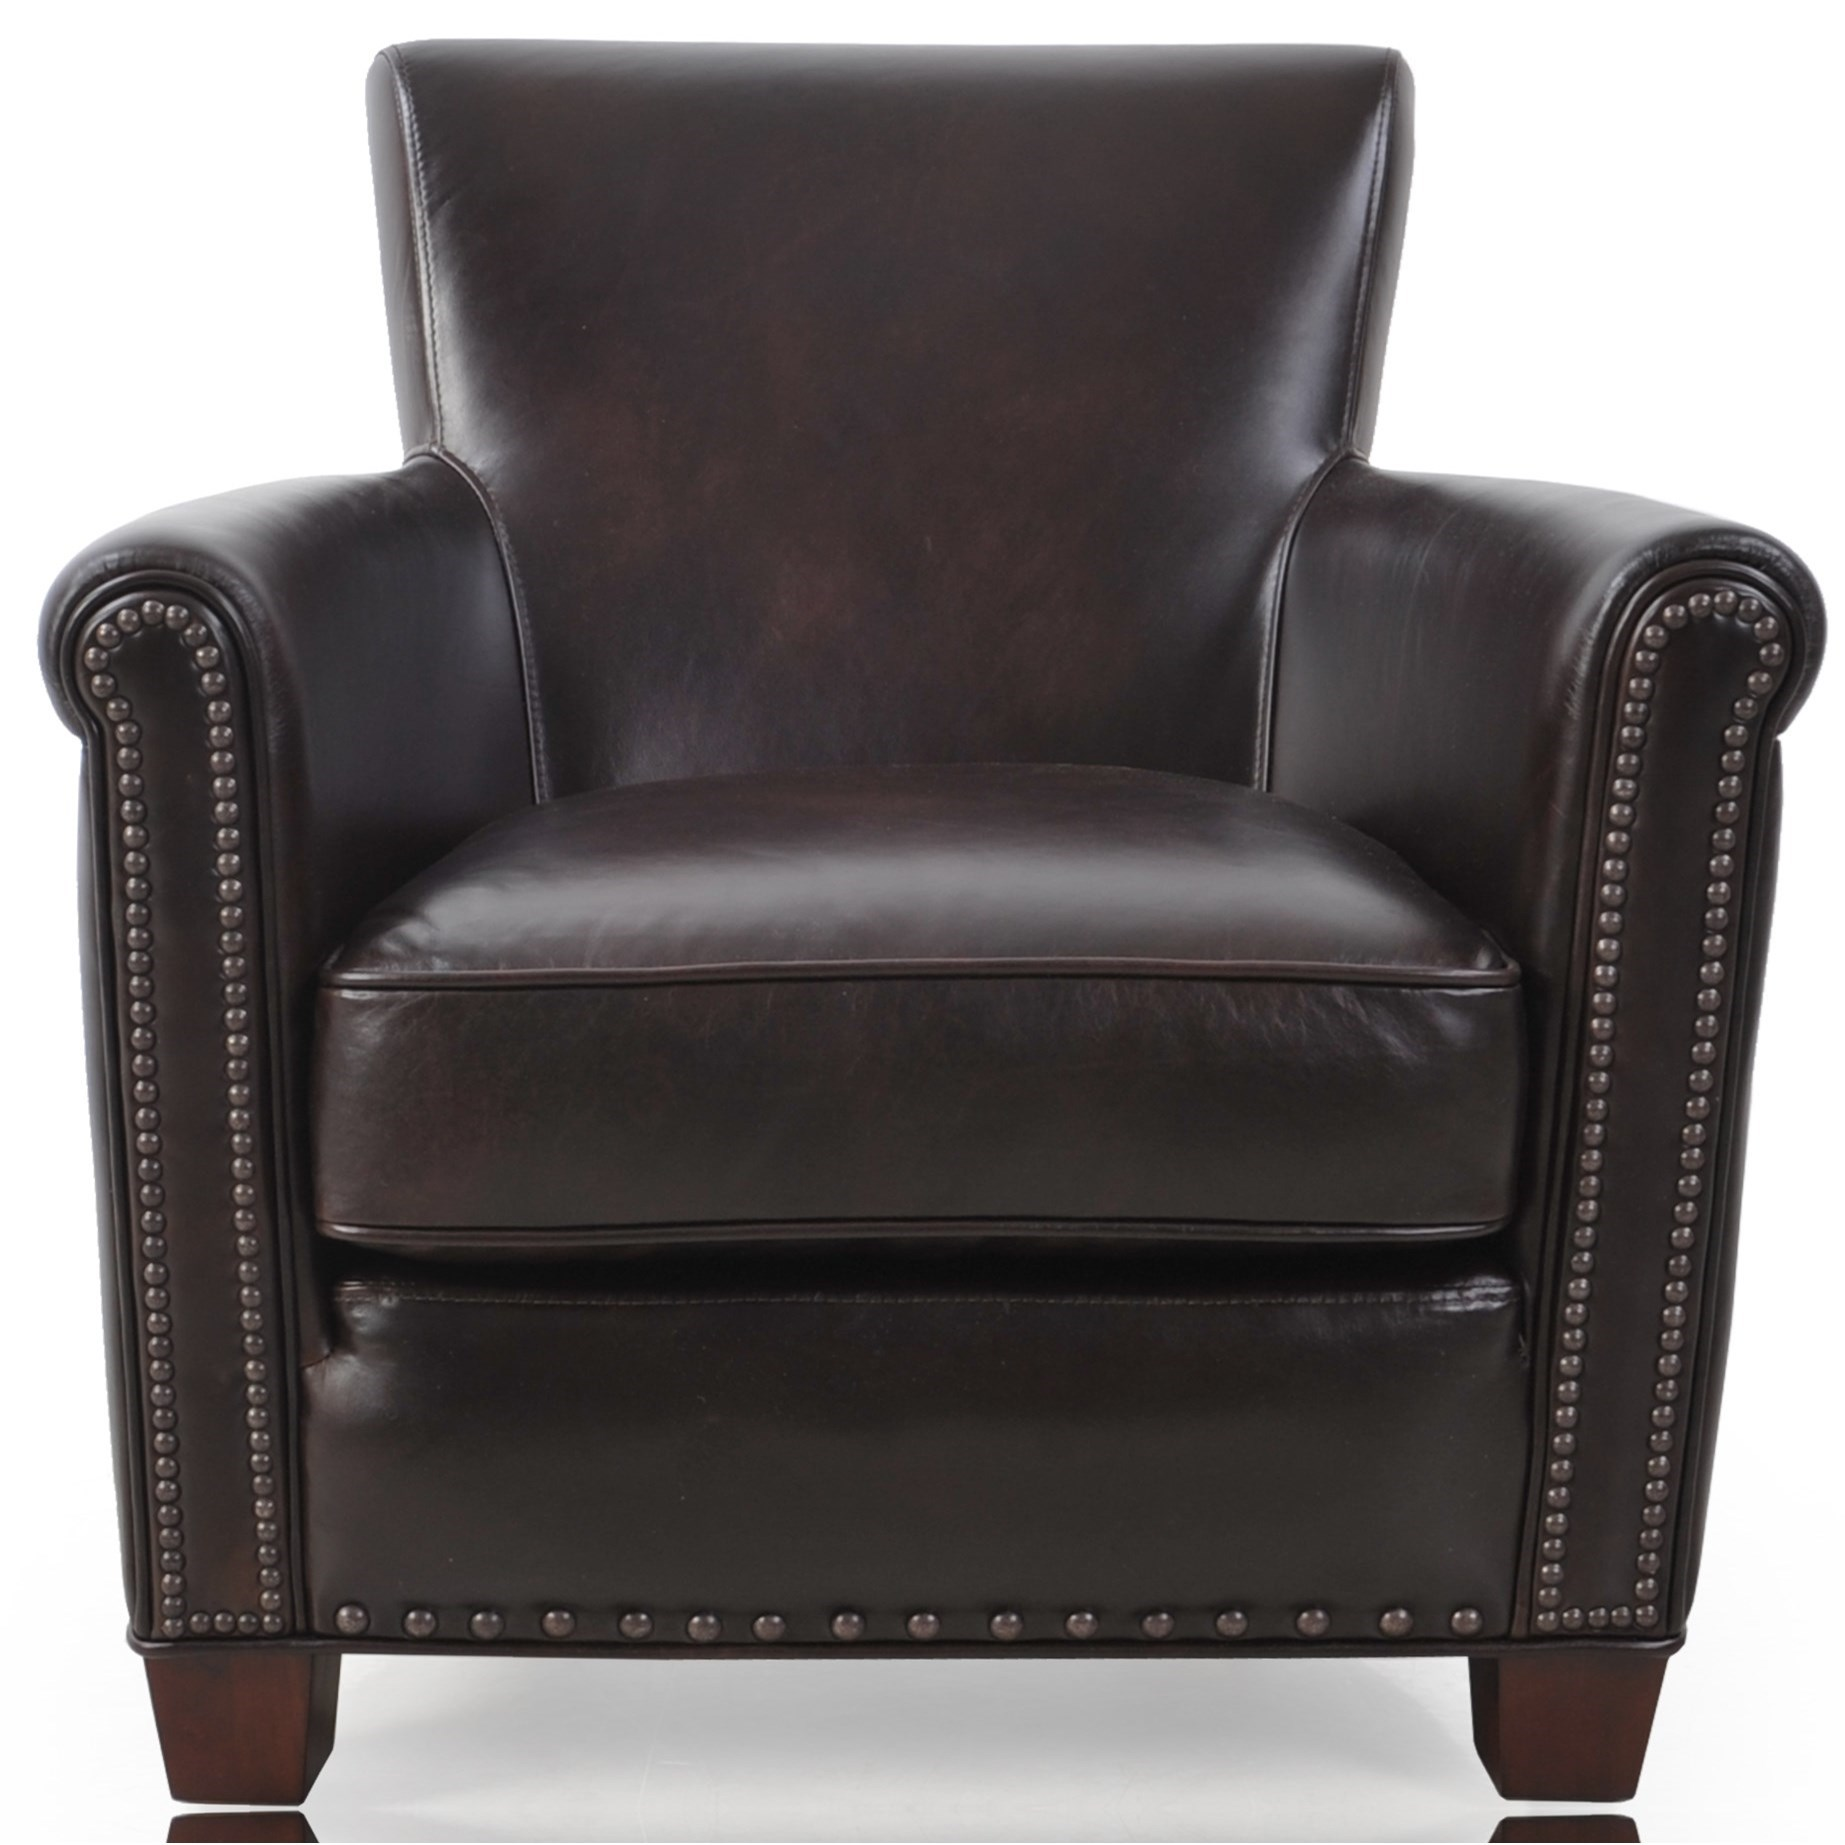 Futura Leather 6307 Transitional Chair - Item Number: 6307N-10 N3300F